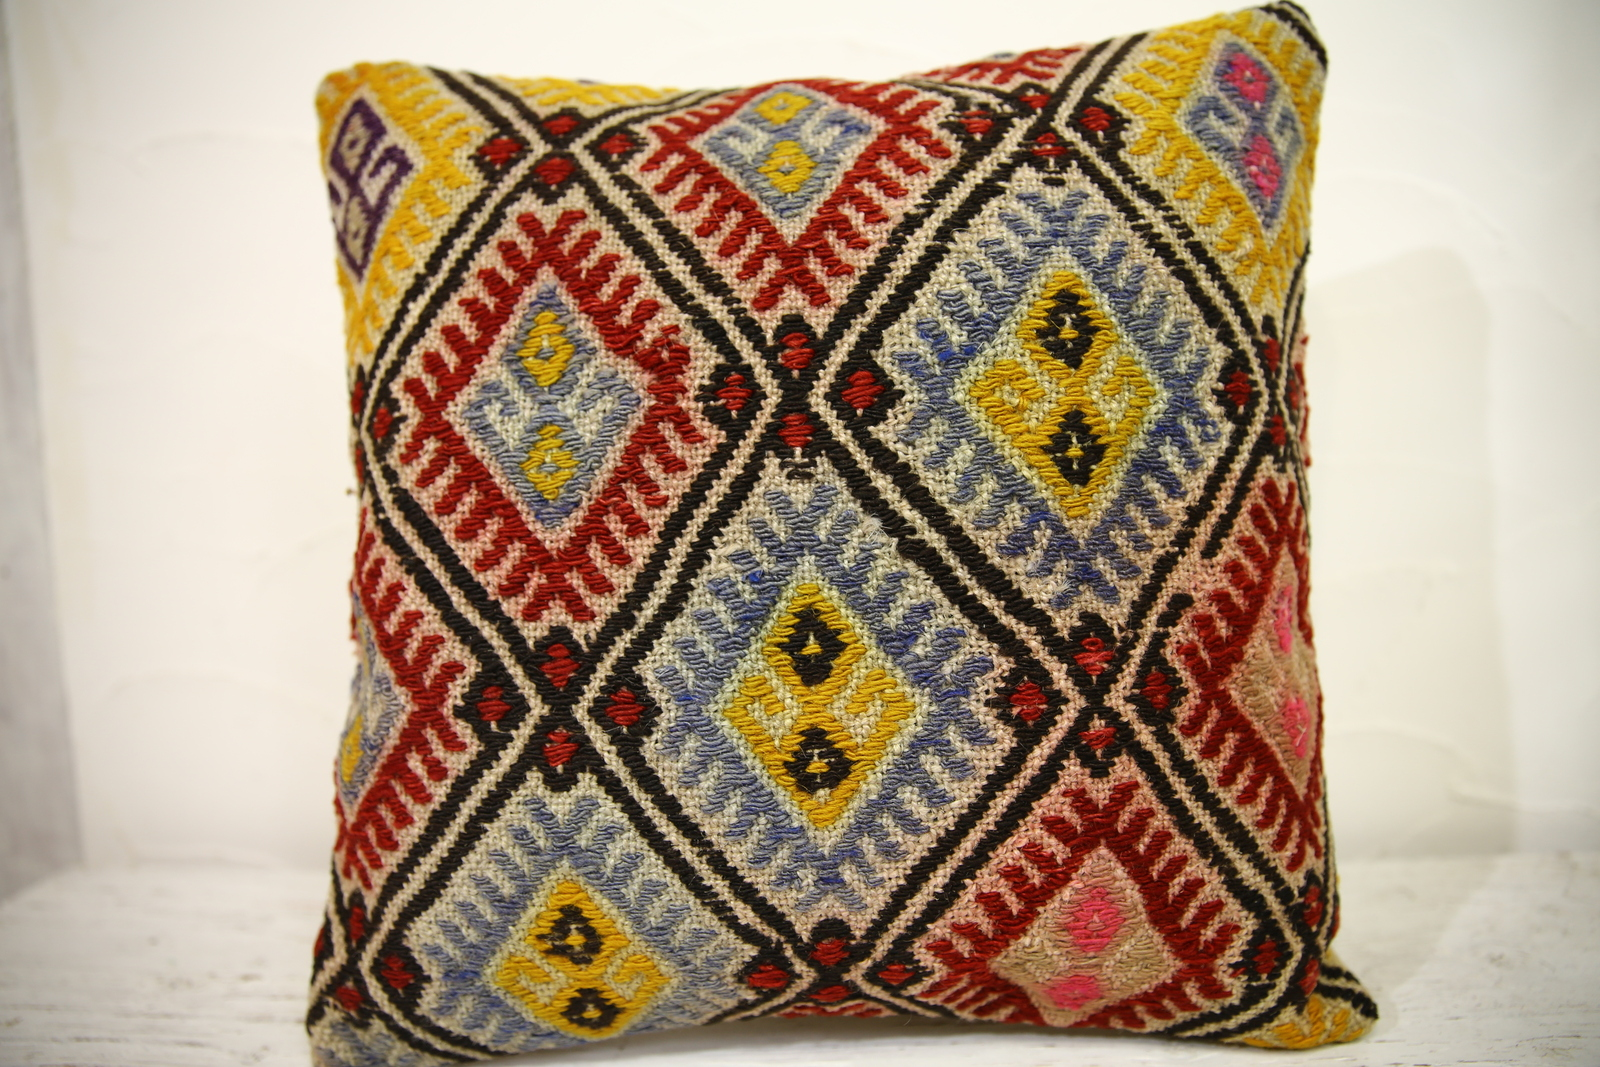 Kilim Pillows |16x16 | Decorative Pillows | 1052 | Accent Pillows turkish pillow